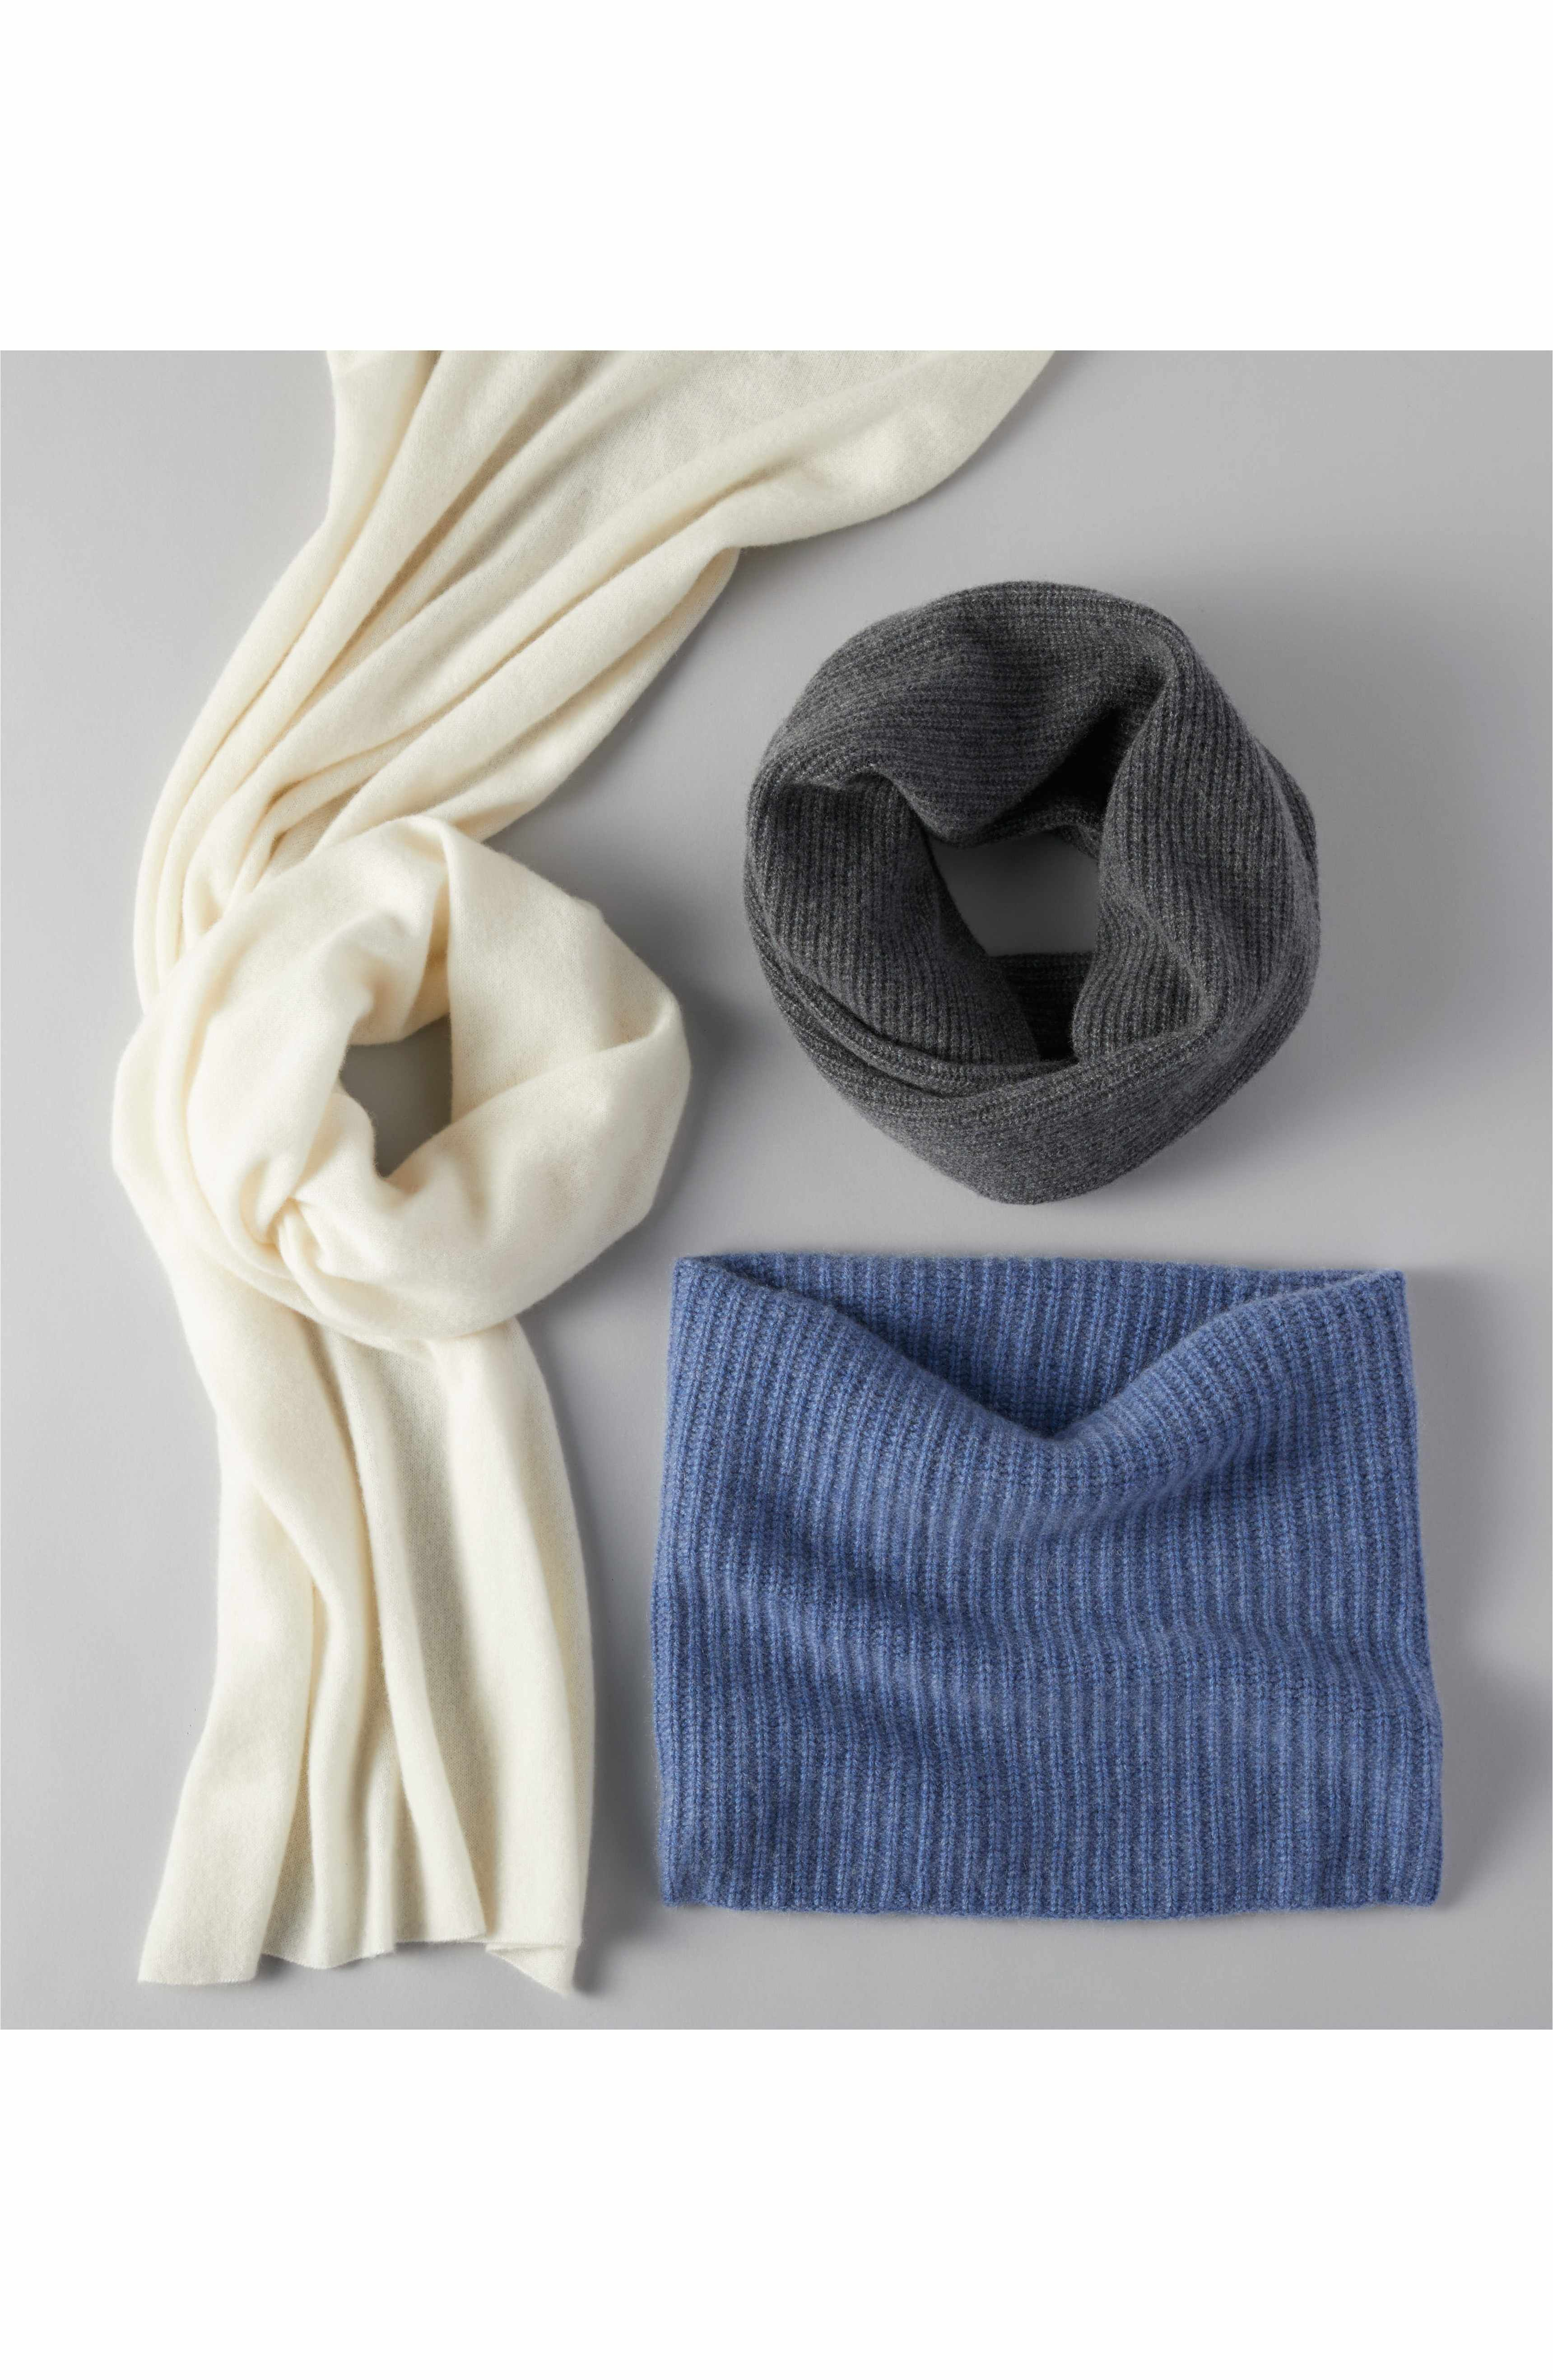 infinity at wraps img womens cheap december cashmere shopping scarf scarves com halogen buy nordstrom